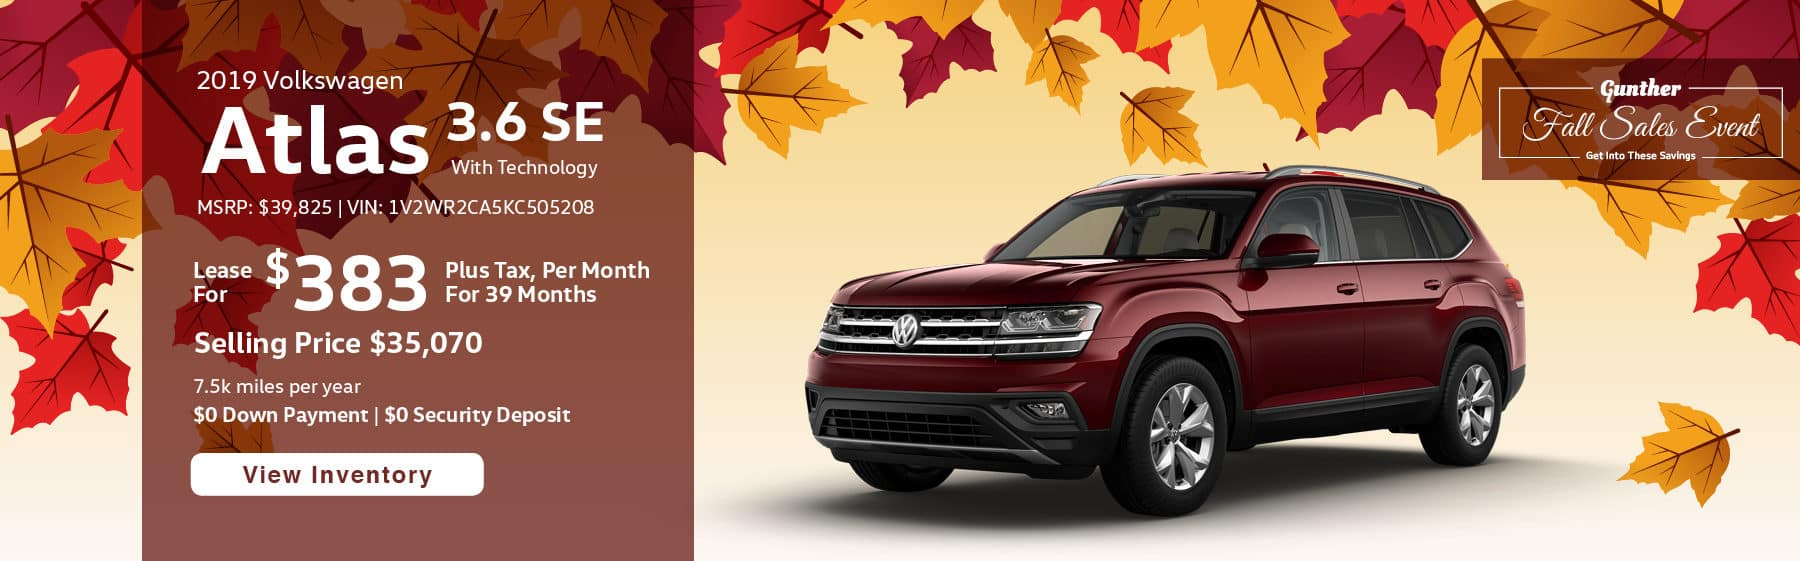 Lease the 2019 Atlas V6 SE with Technology for $383 per month, plus tax for 39 months.